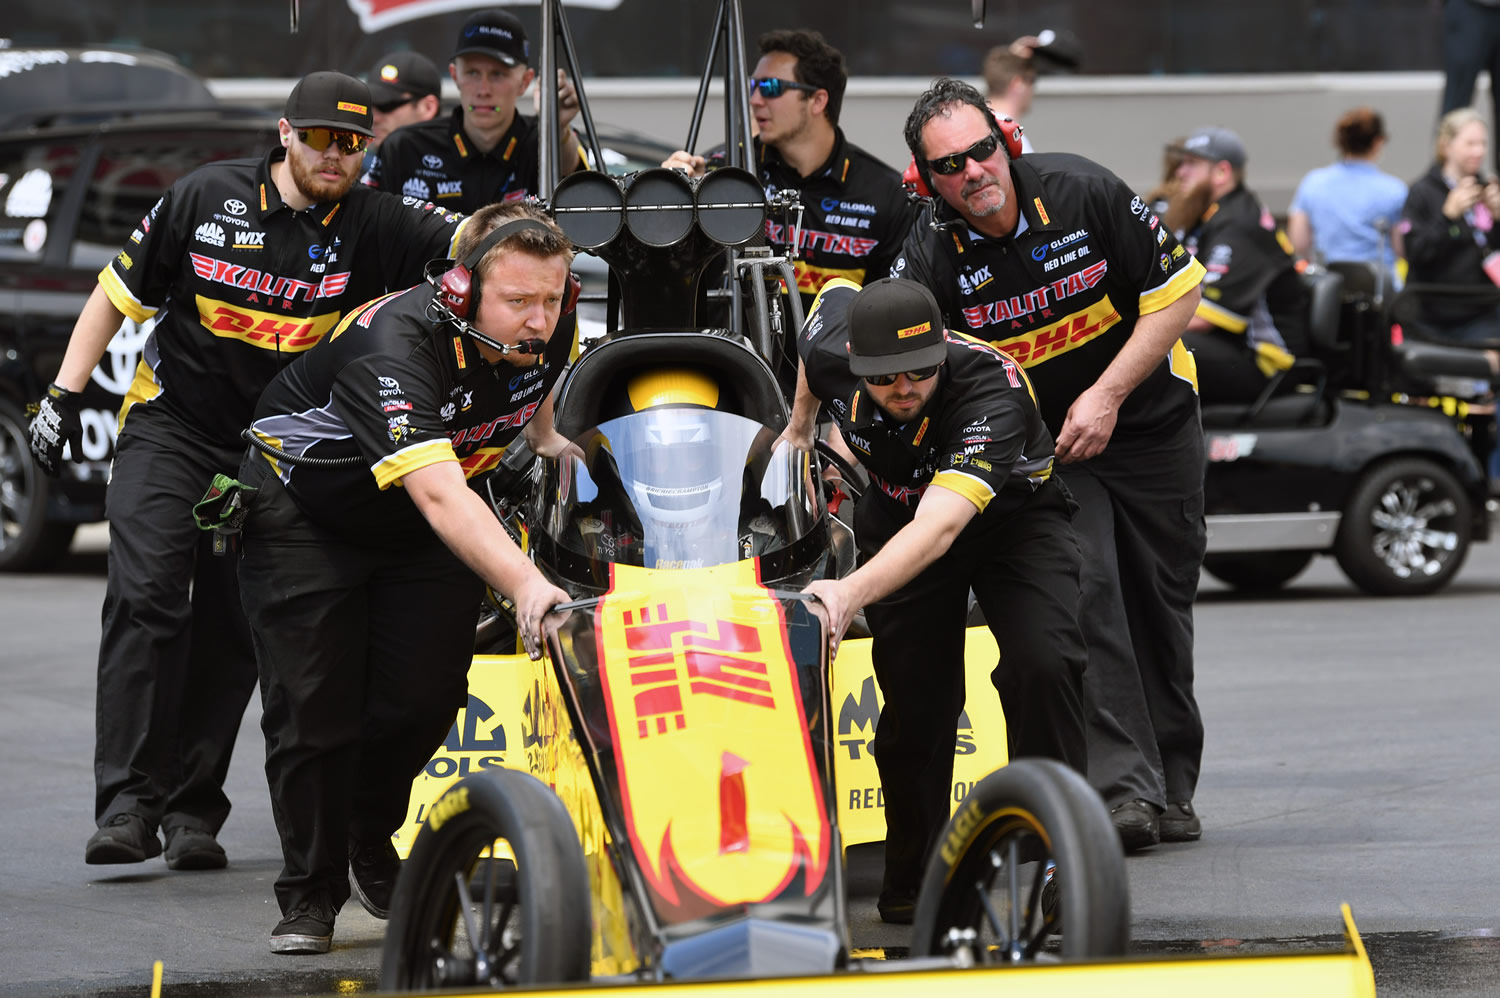 Team Kalitta Air/DHL